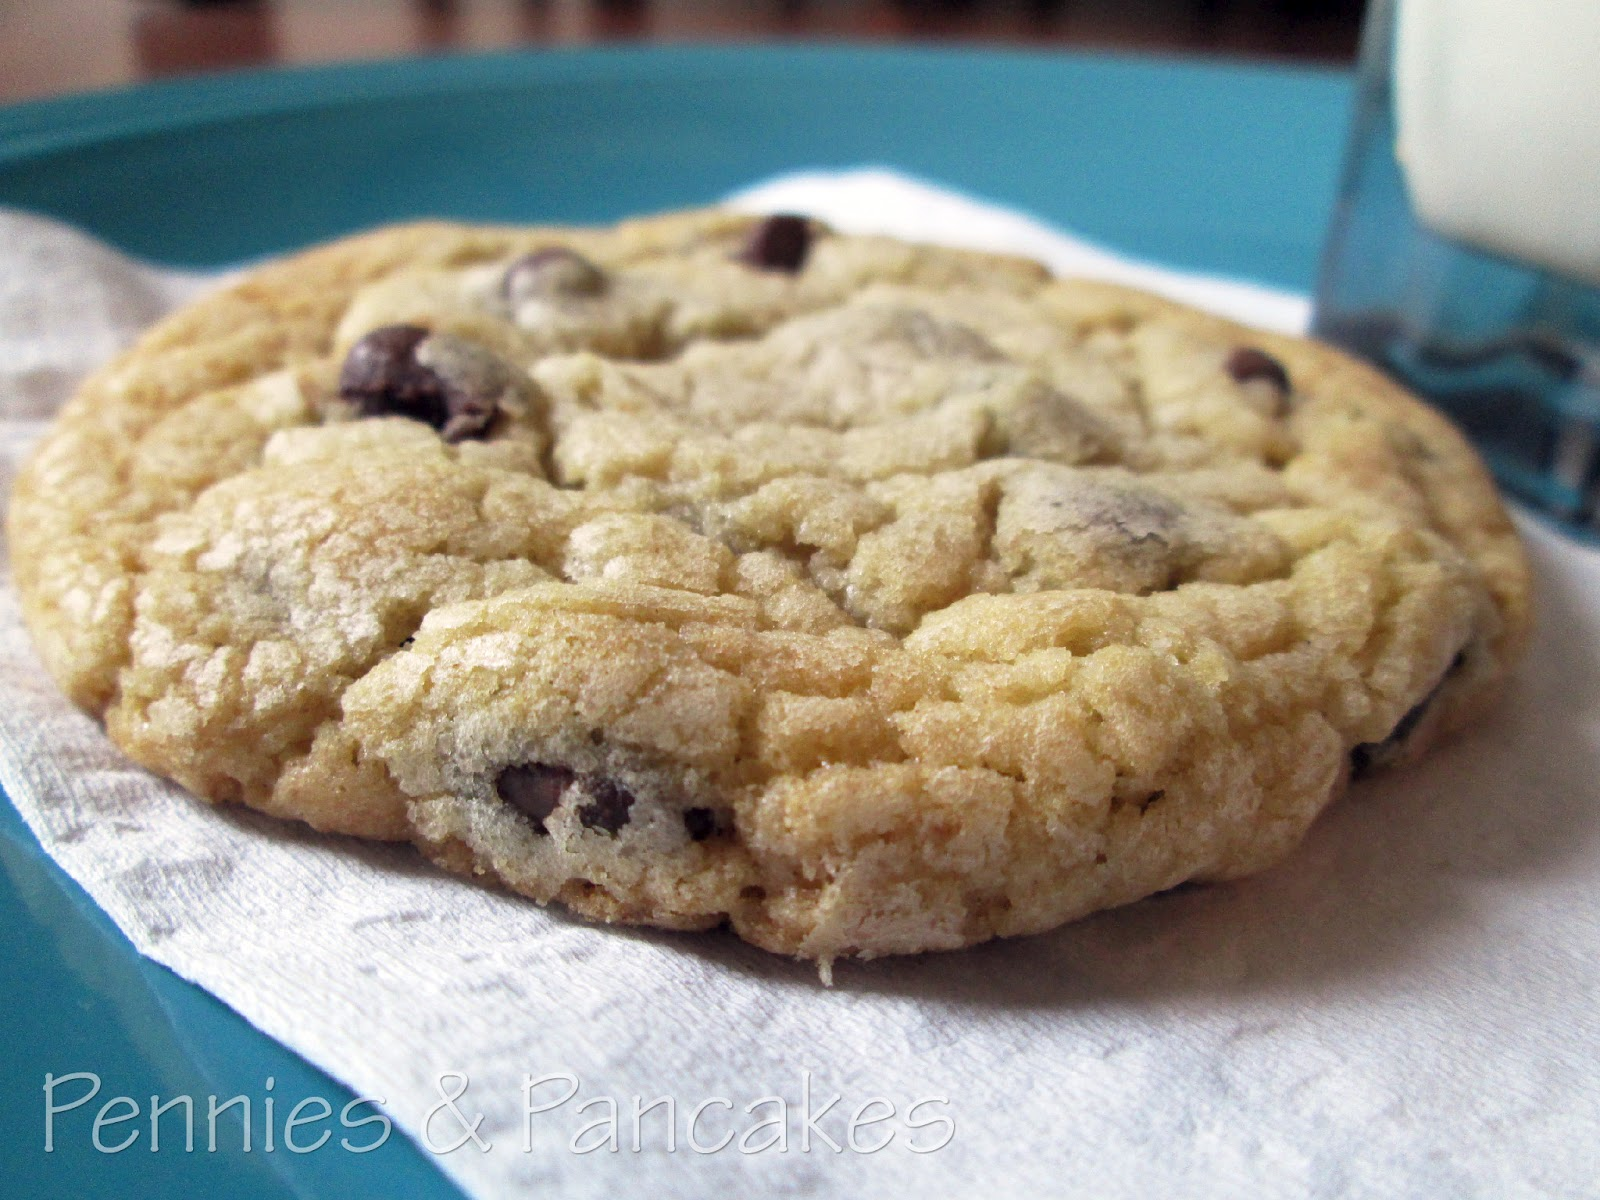 Pennies & Pancakes: Bakery-Style Chocolate Chip Cookies ($0.19 each)